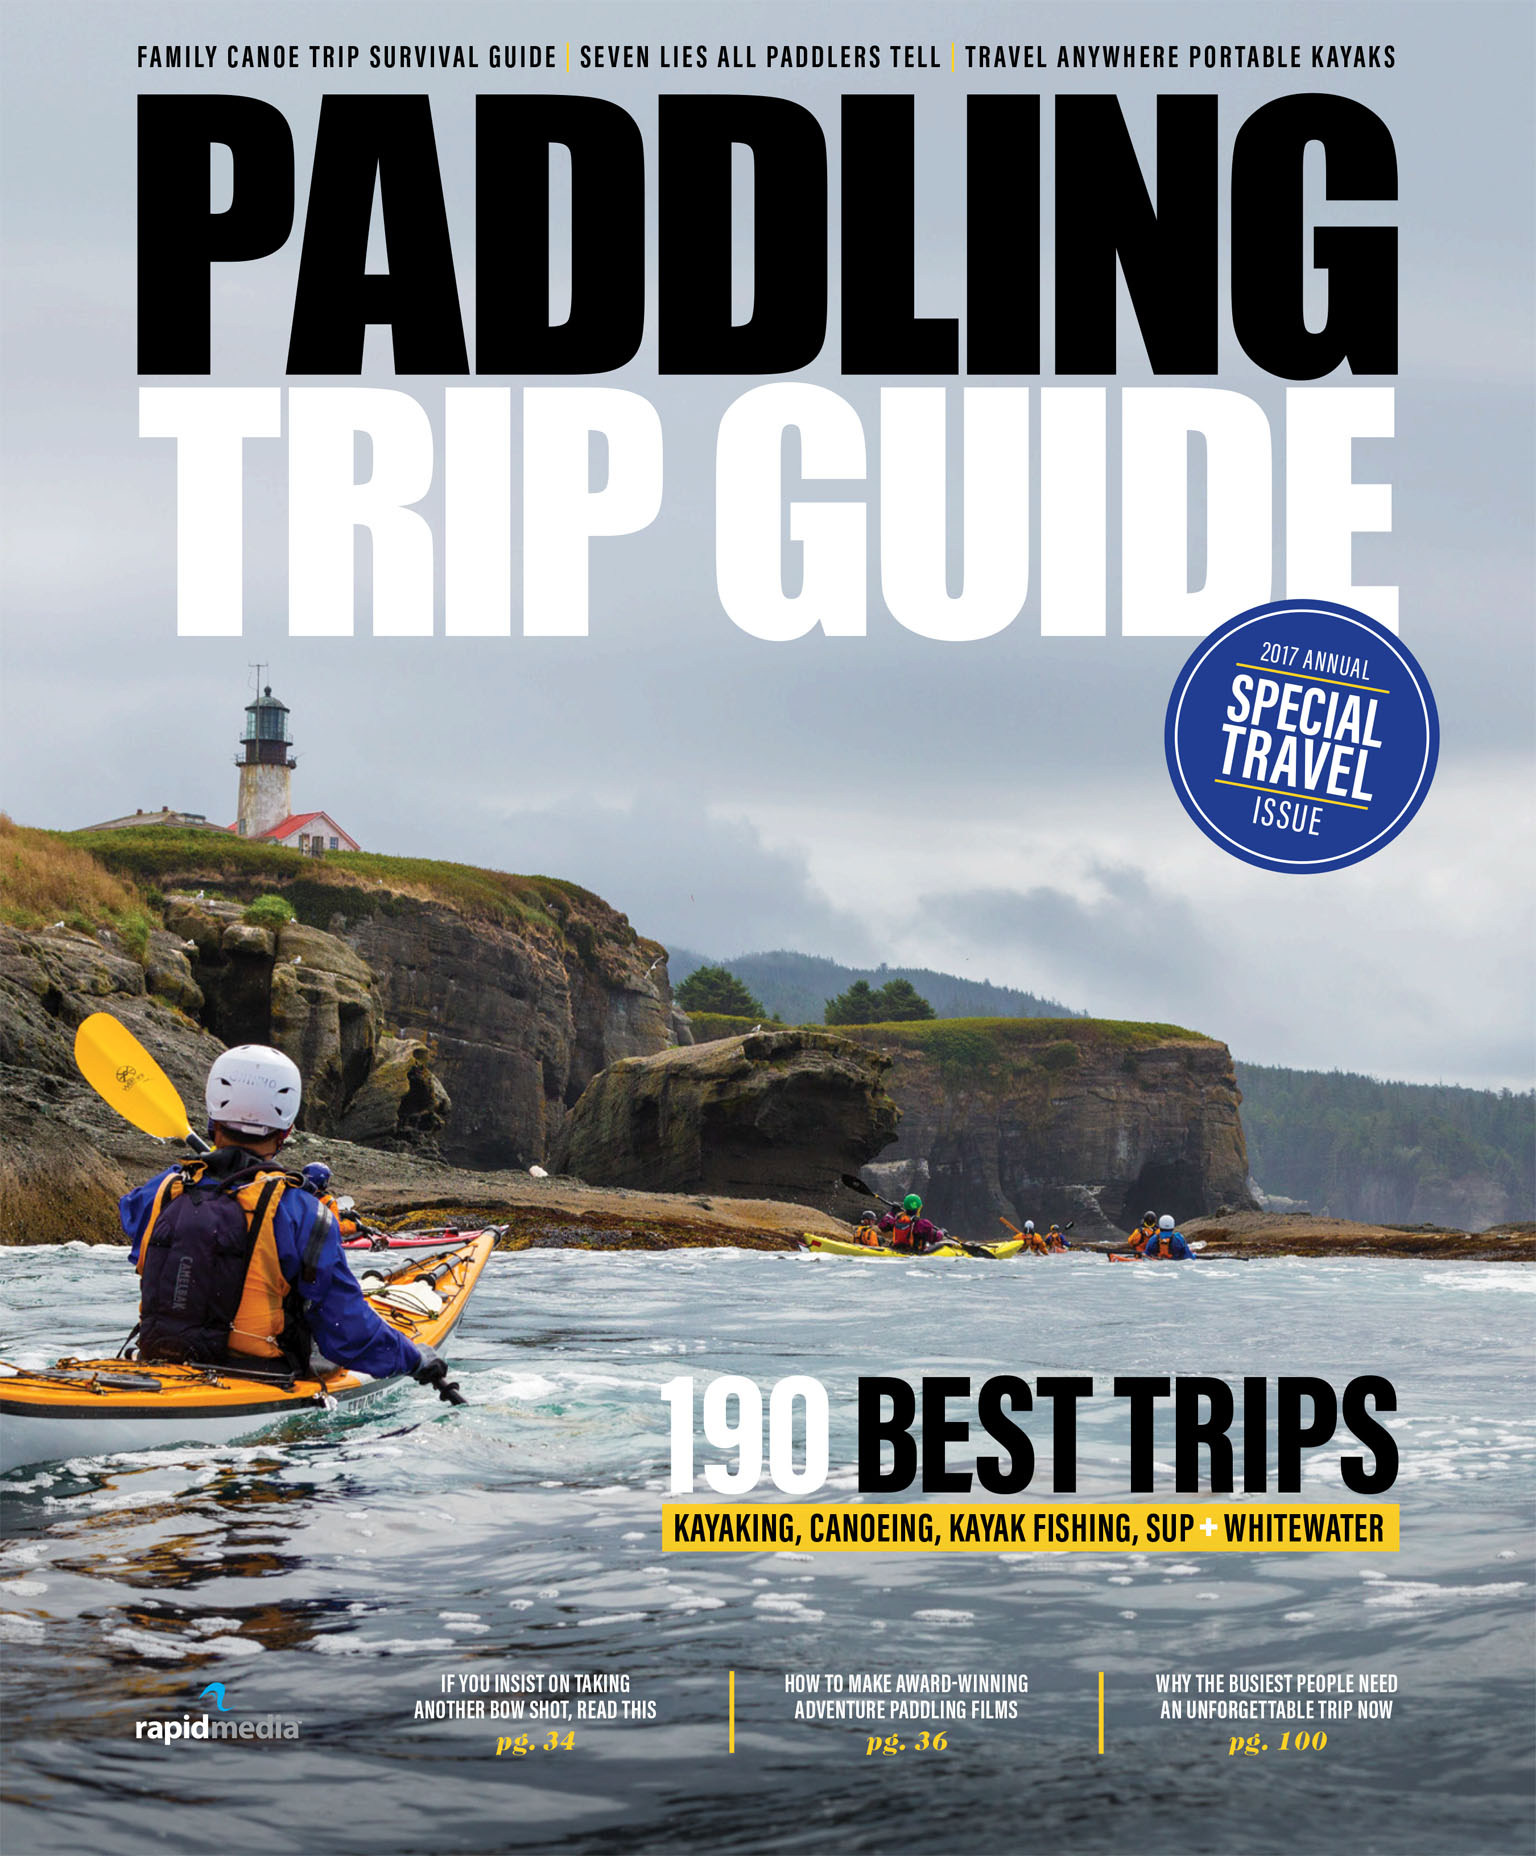 PaddlingTripGuide_2017